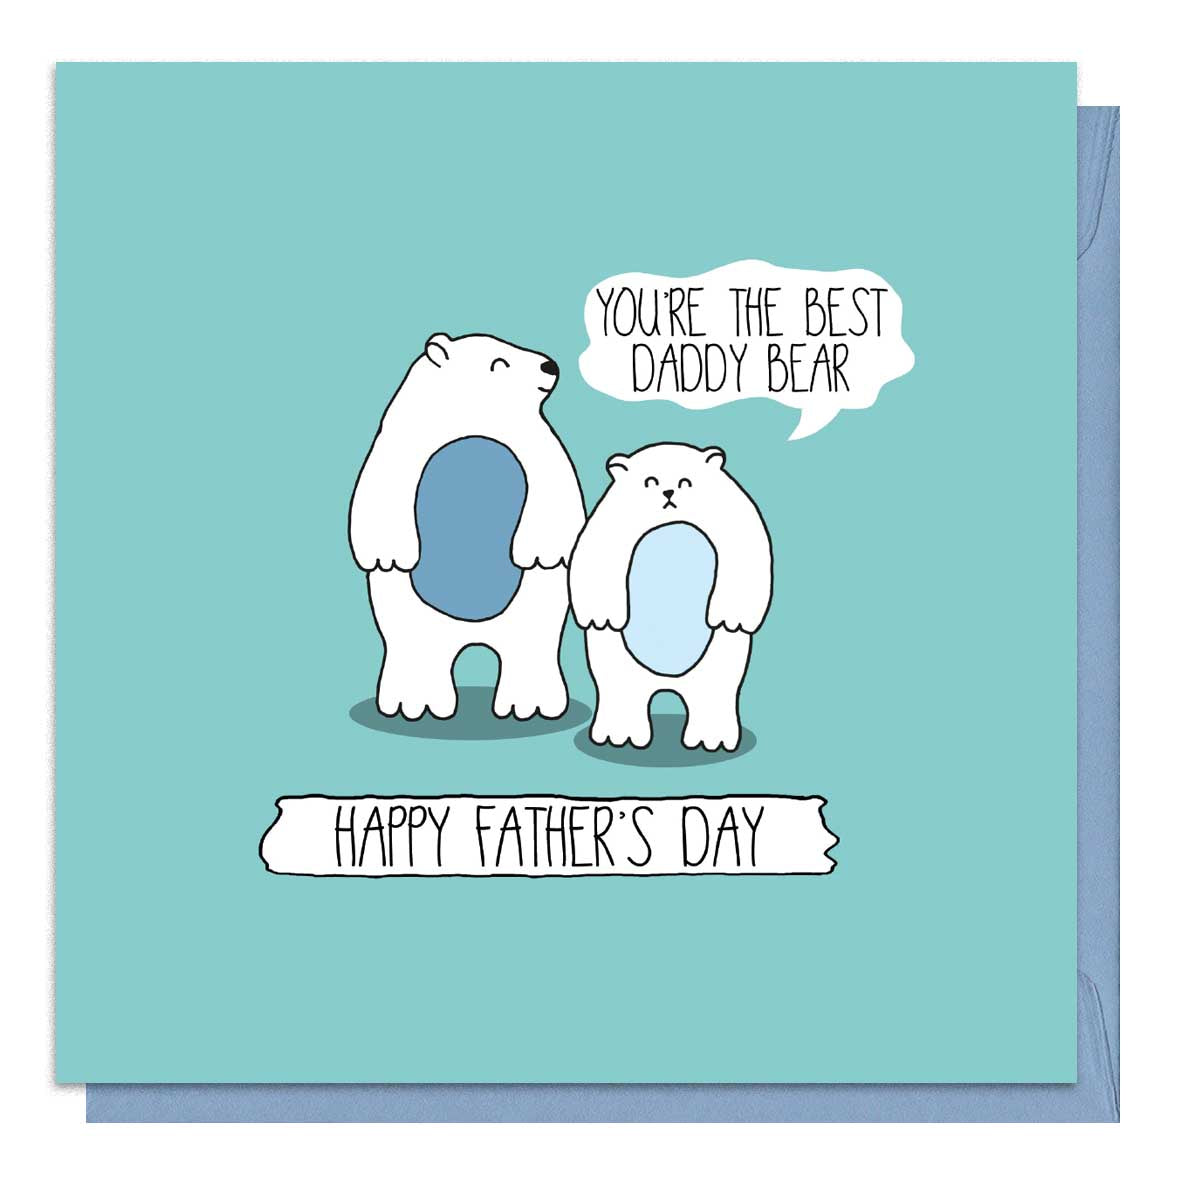 Green Father's Day Card with a daddy and baby bear